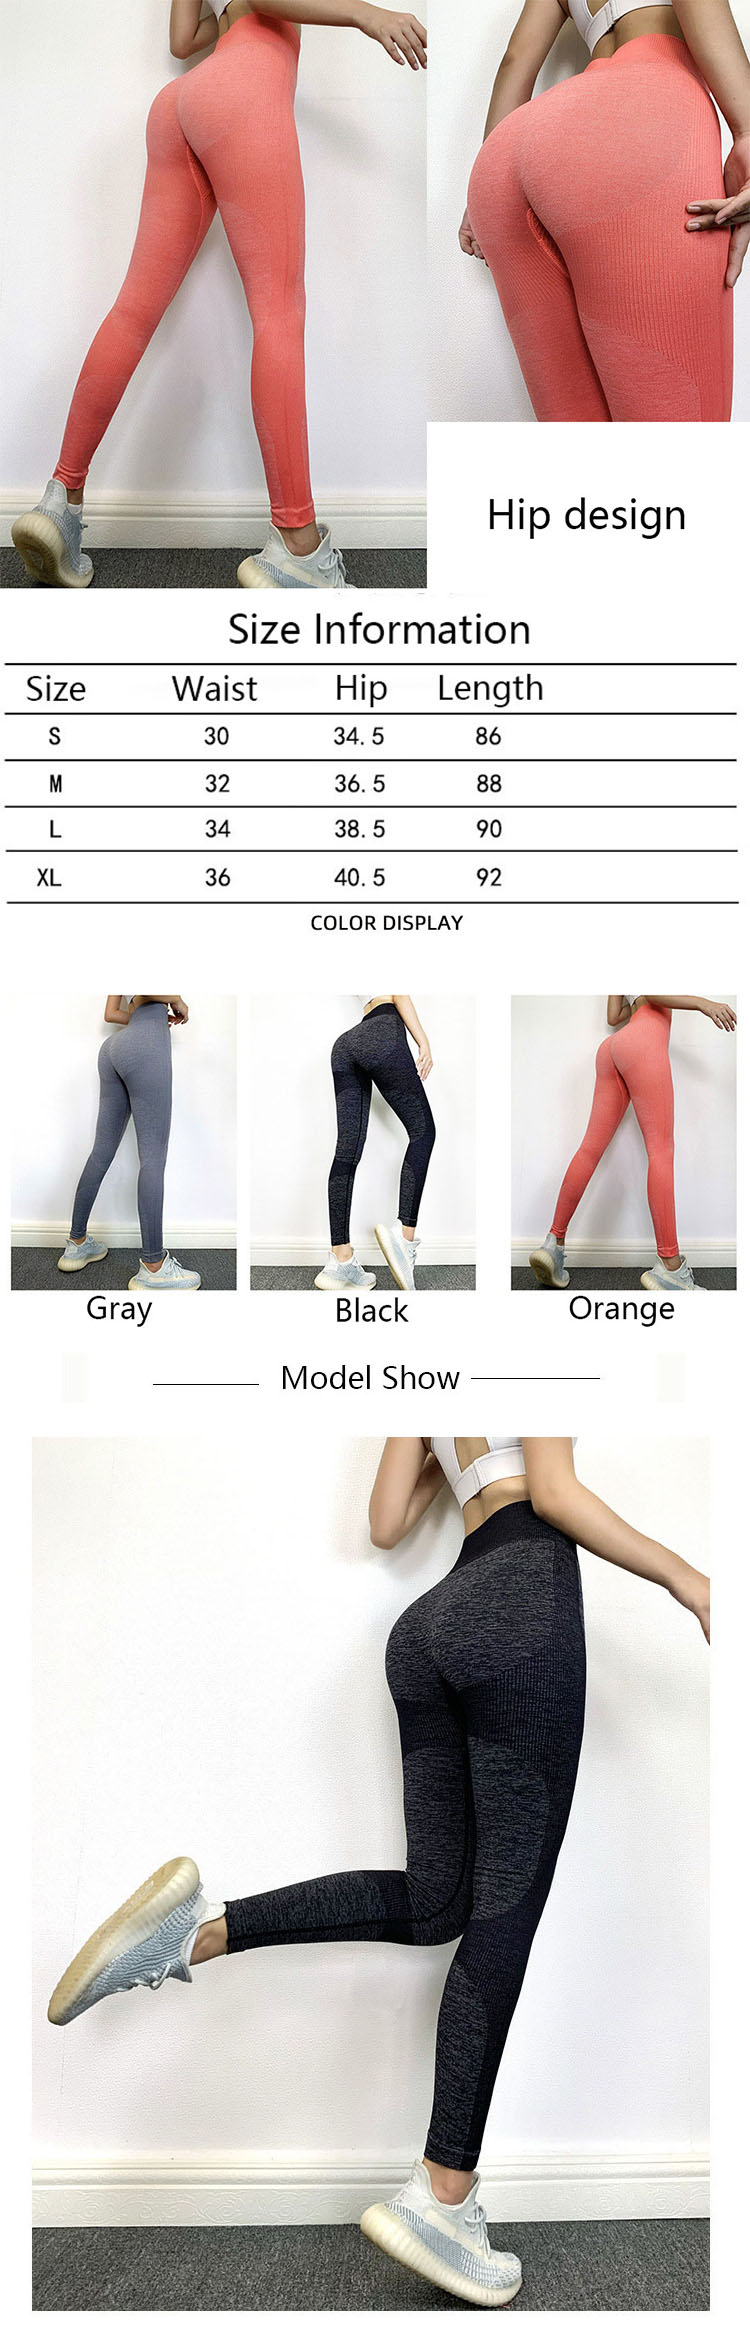 The side seam design of orange workout leggings is a common design starting point.